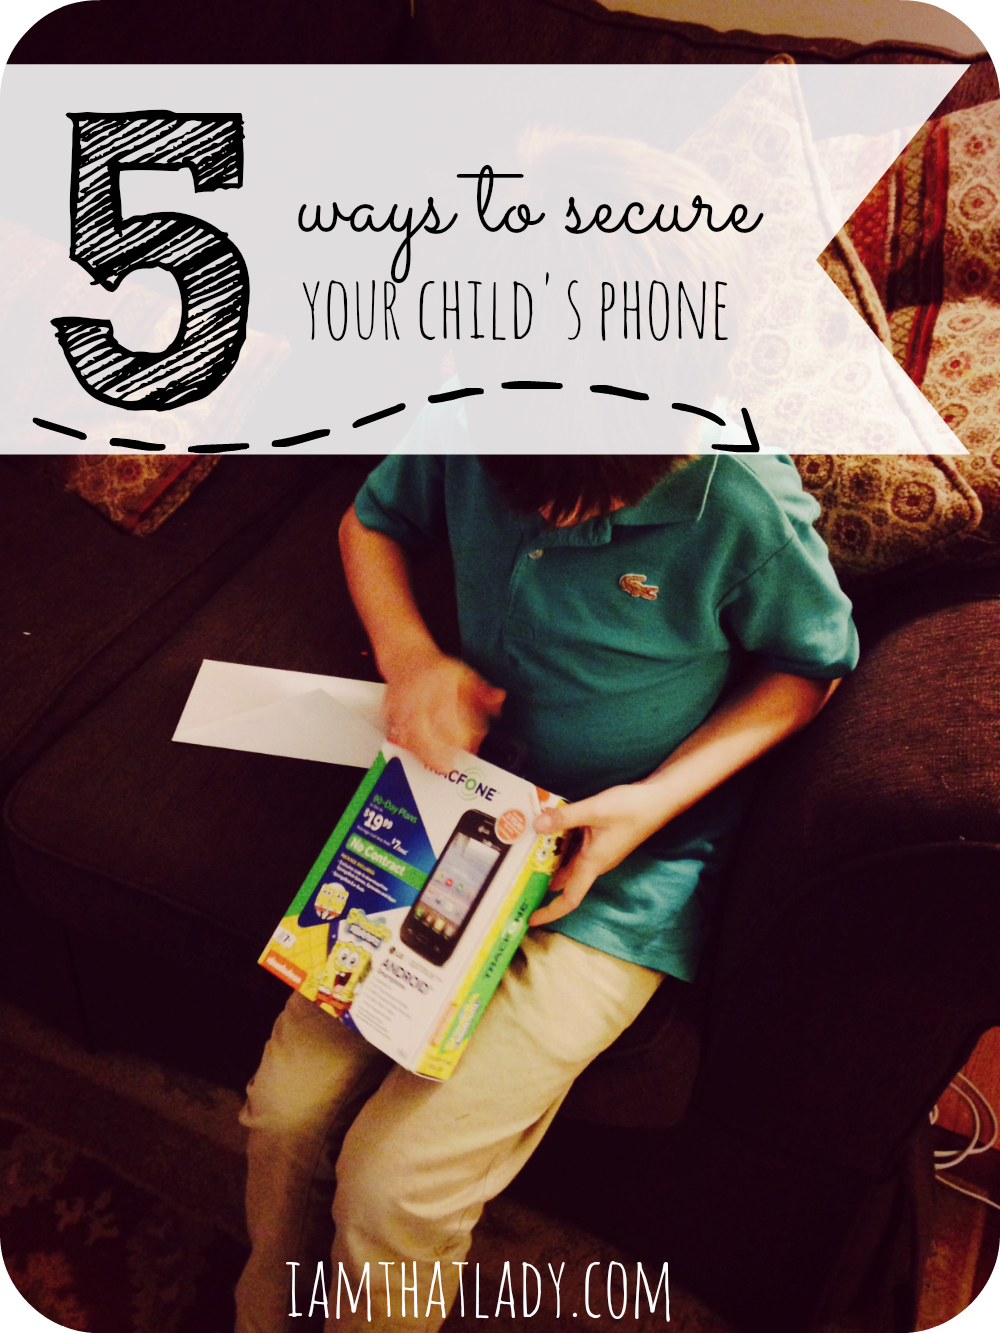 Getting a cell phone for your young child can be terrifying - but it has to happen some time!  There are many ways to secure your child's phone to keep them safe, but here are the top 5 ways that work for us!